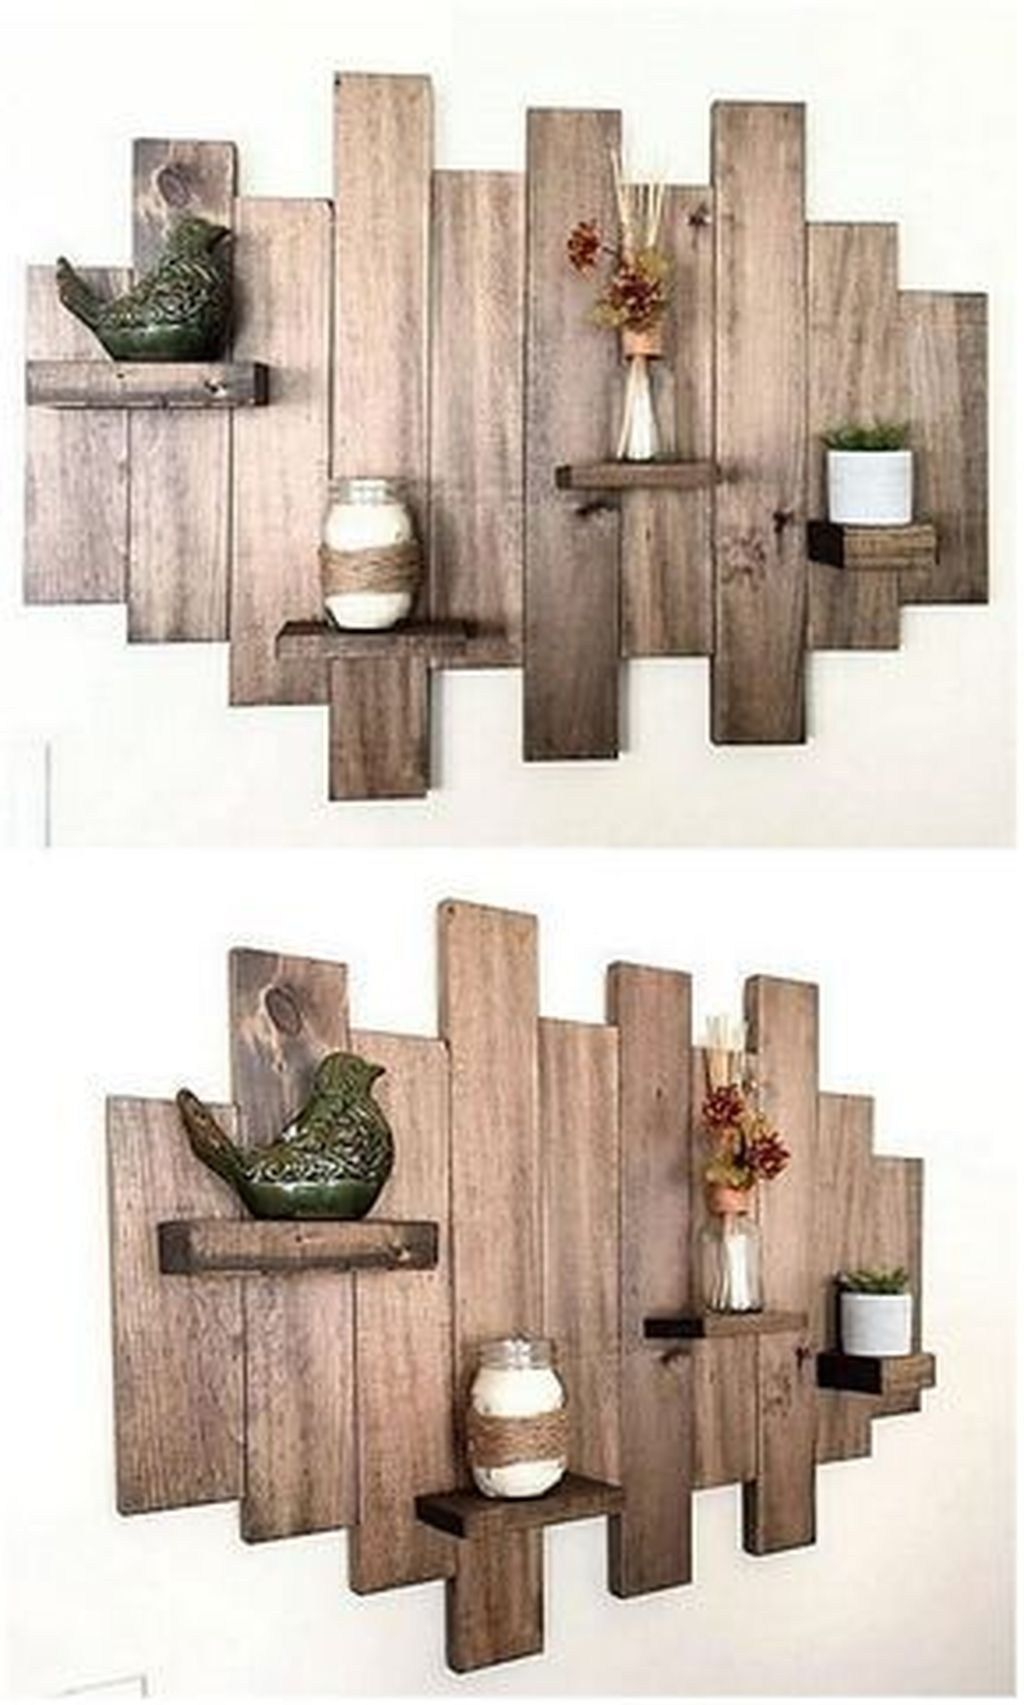 Incredible Used Wood Project Ideas 24   Creative shelving ...